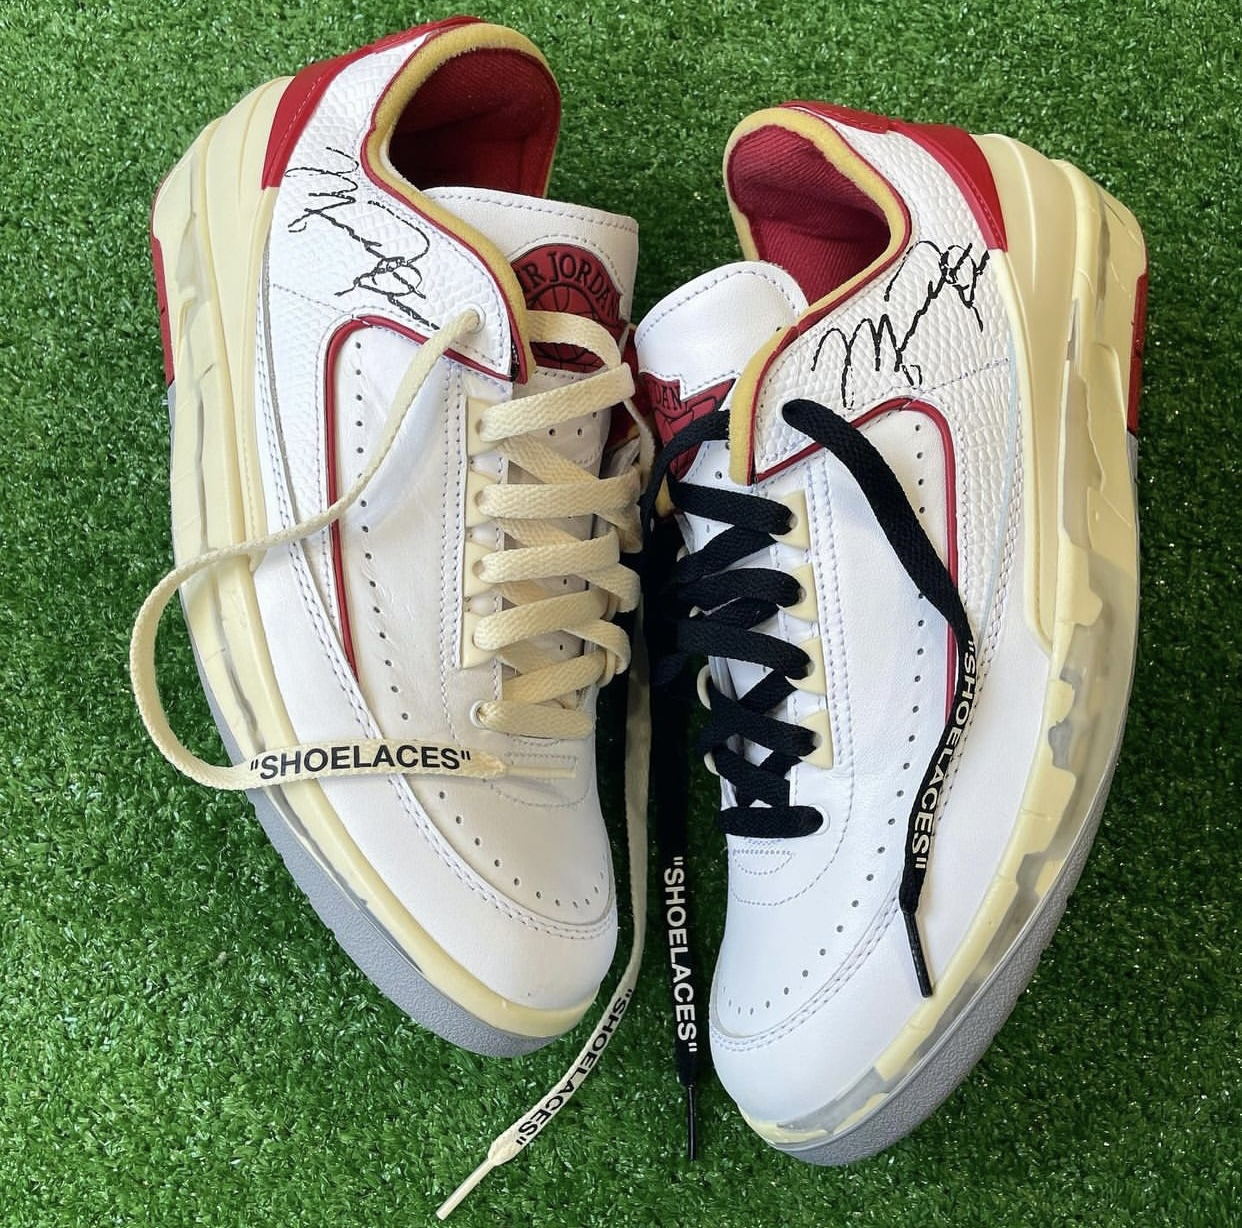 Off-White nike air max 4 grief and life quotes free OG White Red Release Date